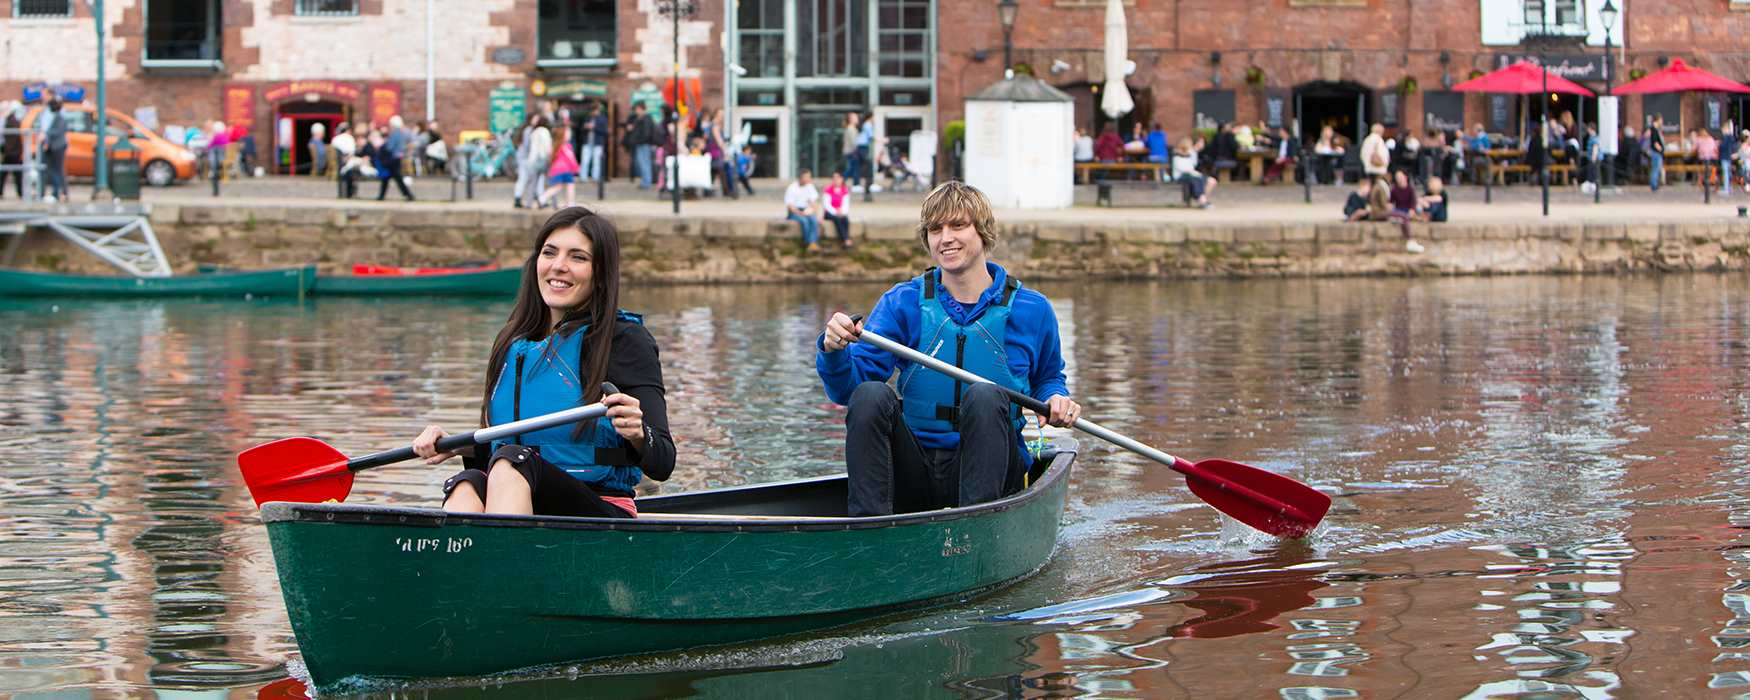 Canoeing on the River Exe